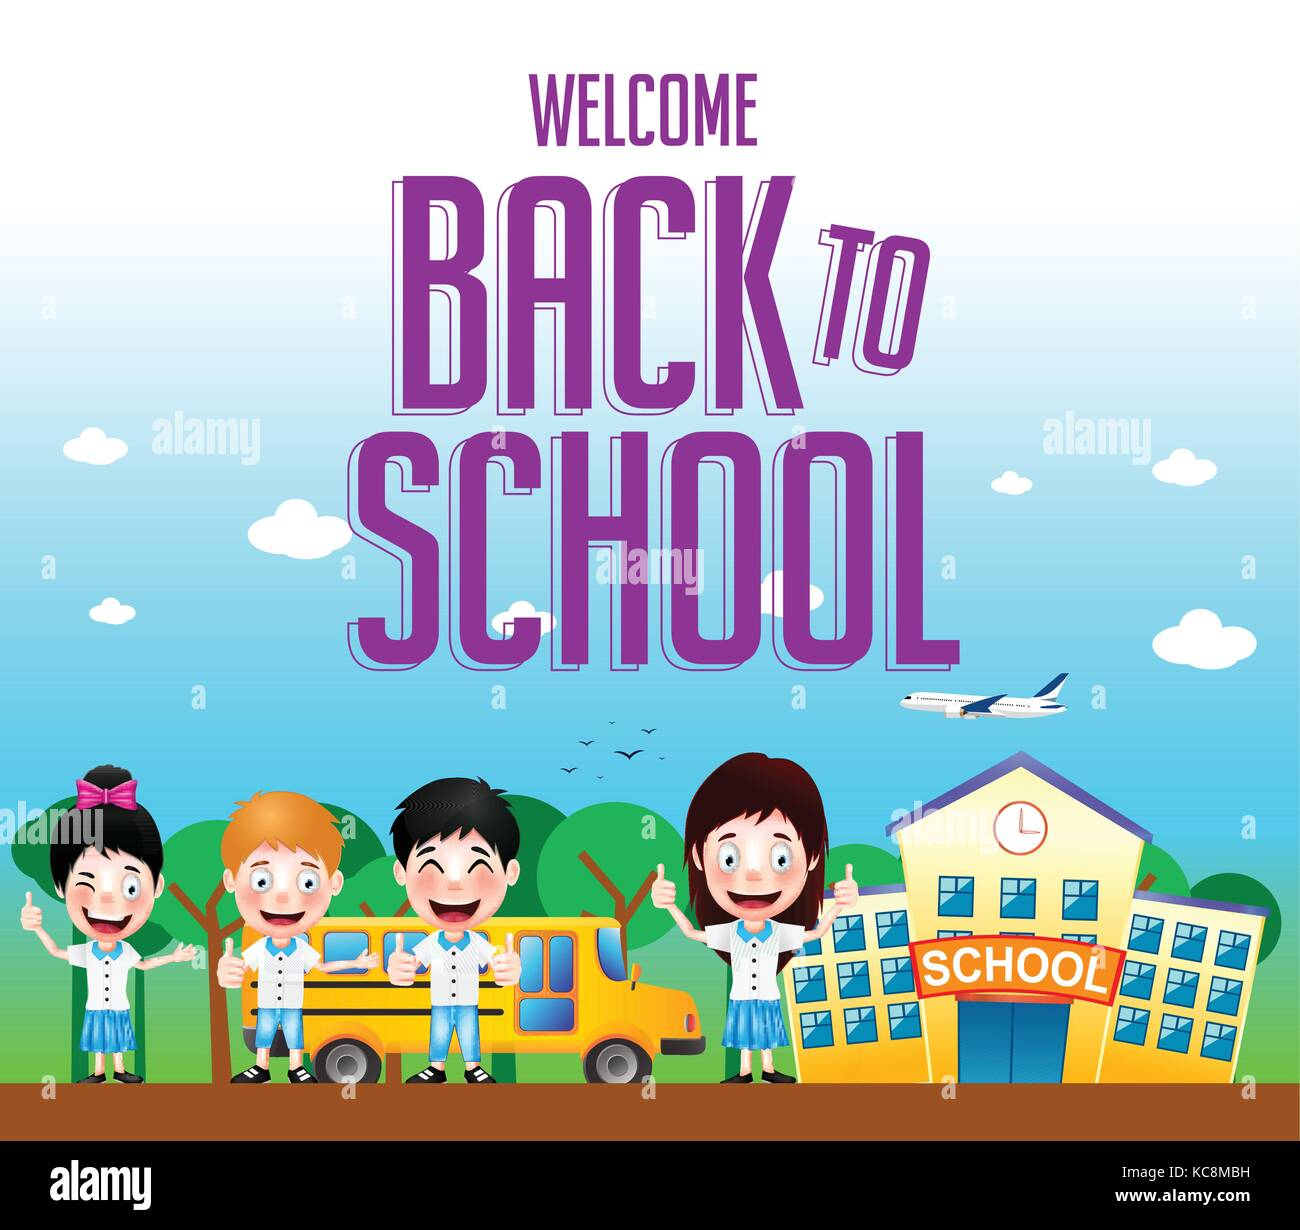 Welcome Back To School Text With School Building And School Bus With Stock Vector Image Art Alamy